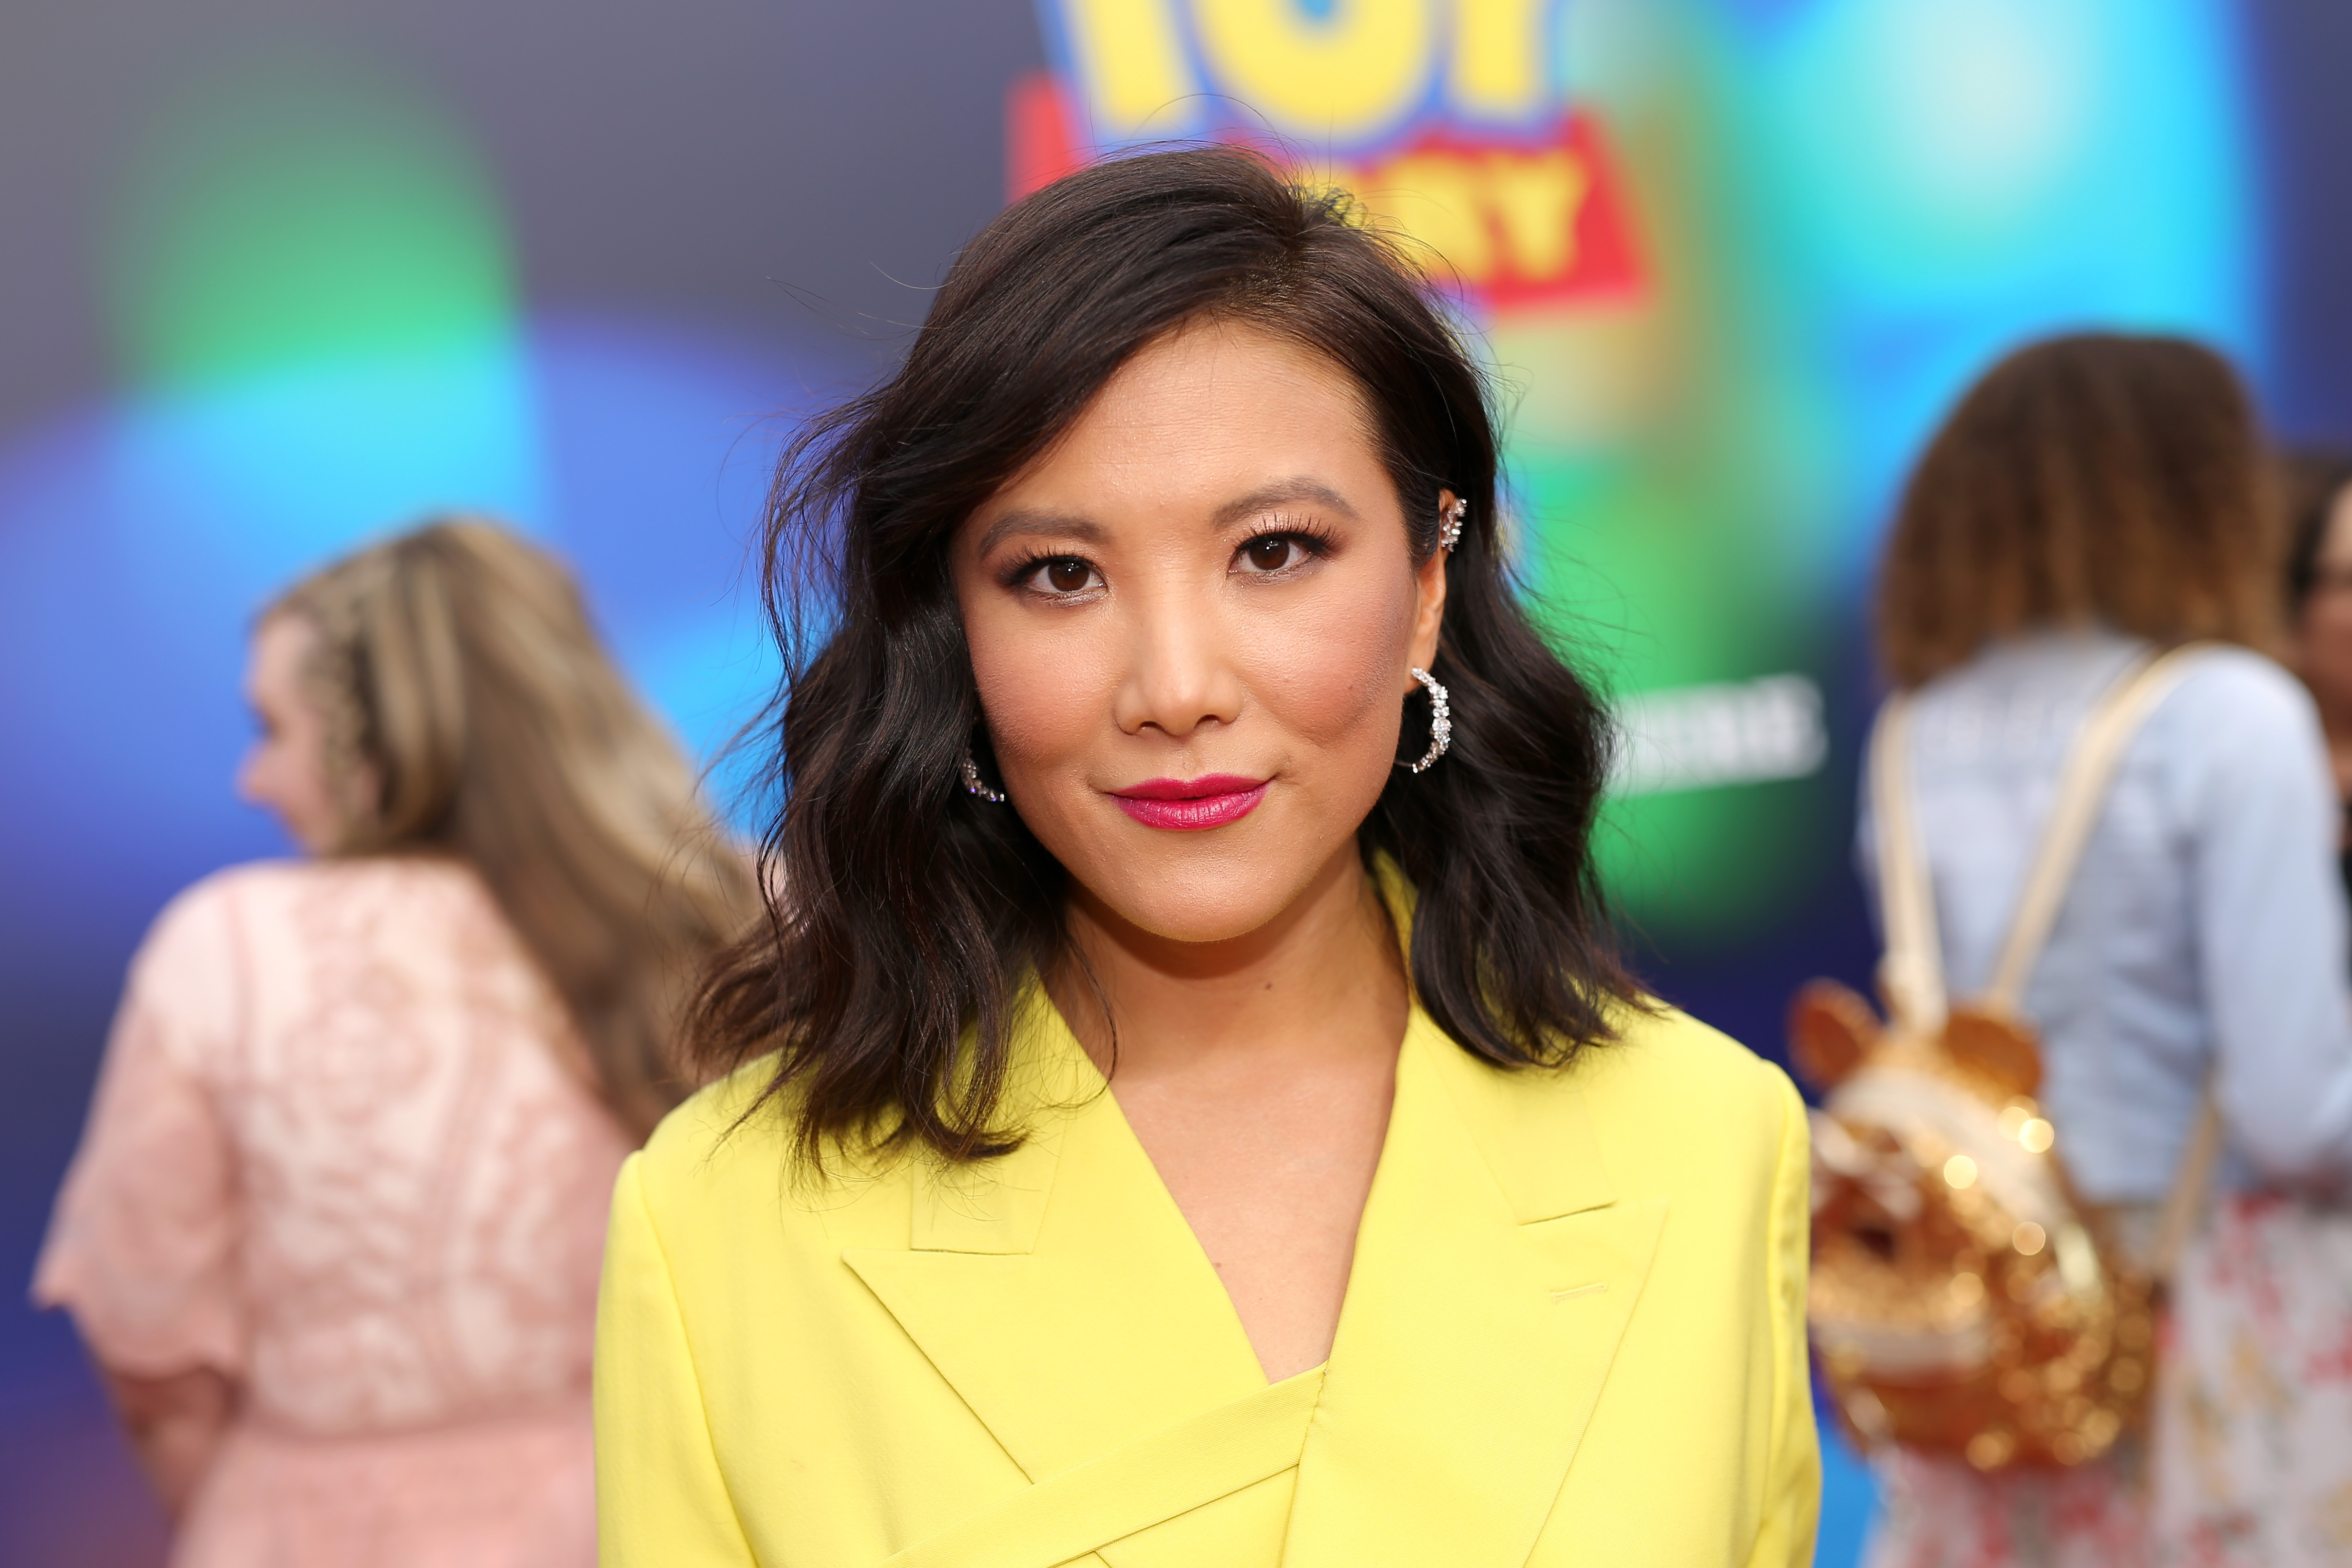 Article: Actress Ally Maki on Becoming Giggle McDimples